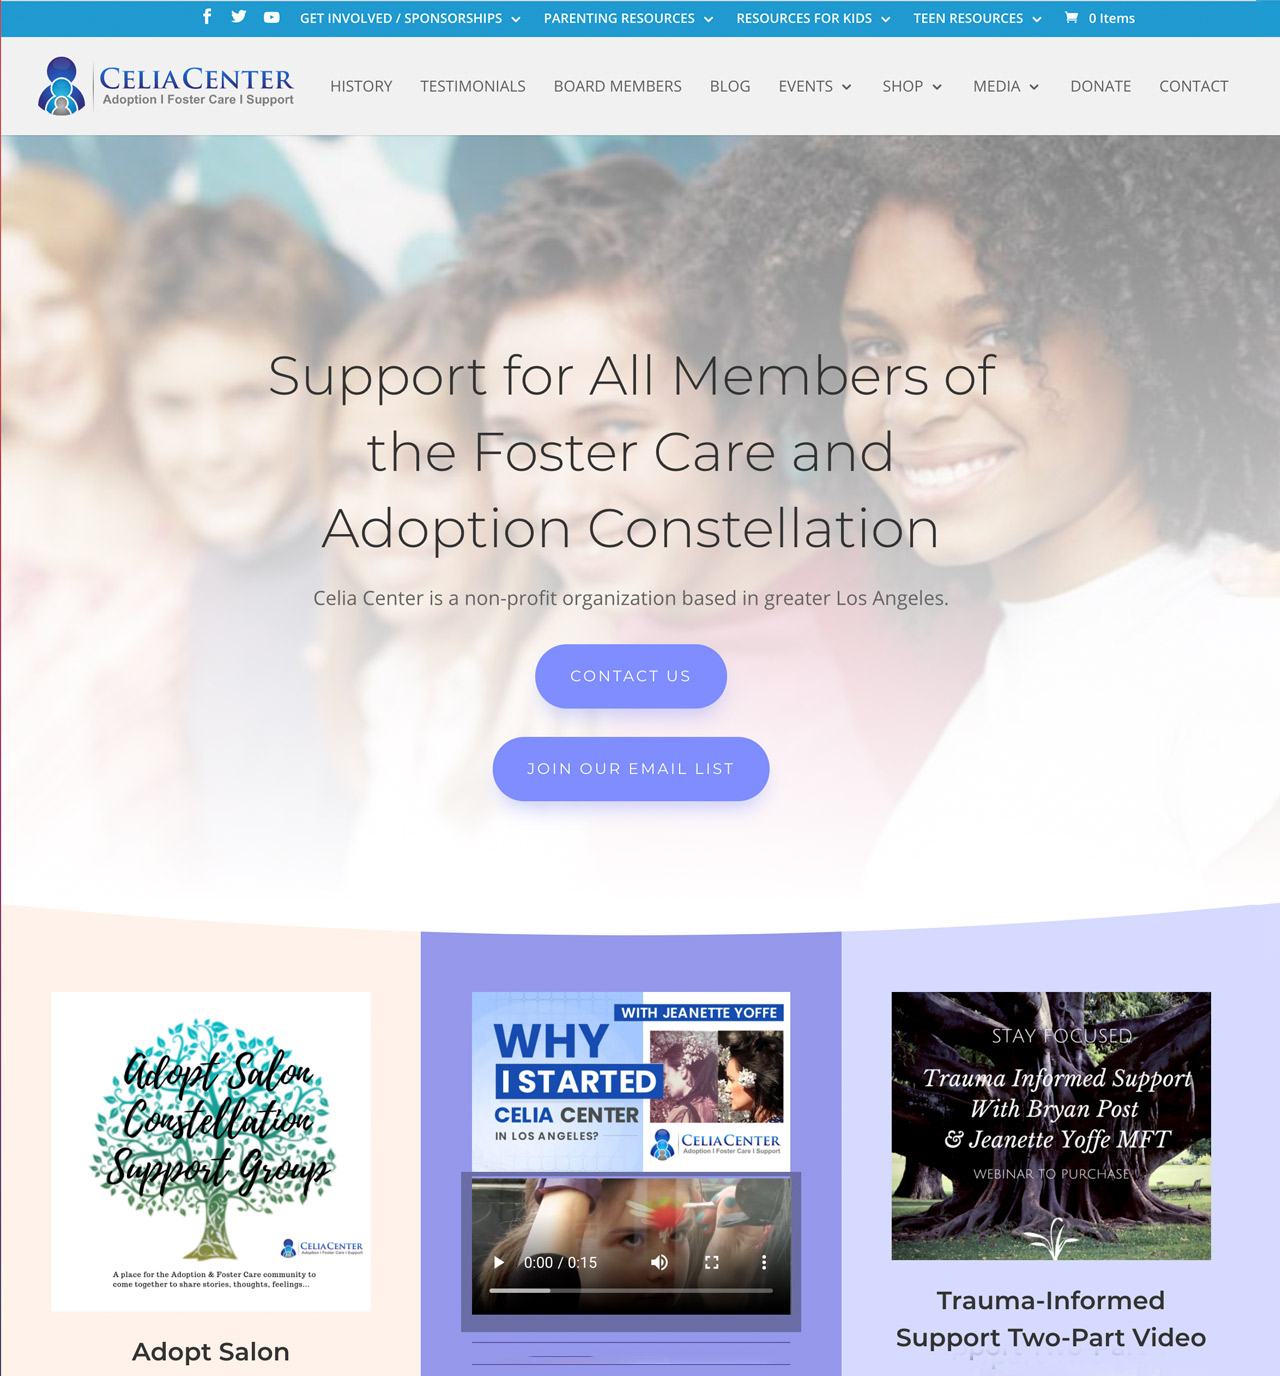 Homepage of Celia Center, Inc. - Support for All Members of the Foster Care and Adoption Constellation.